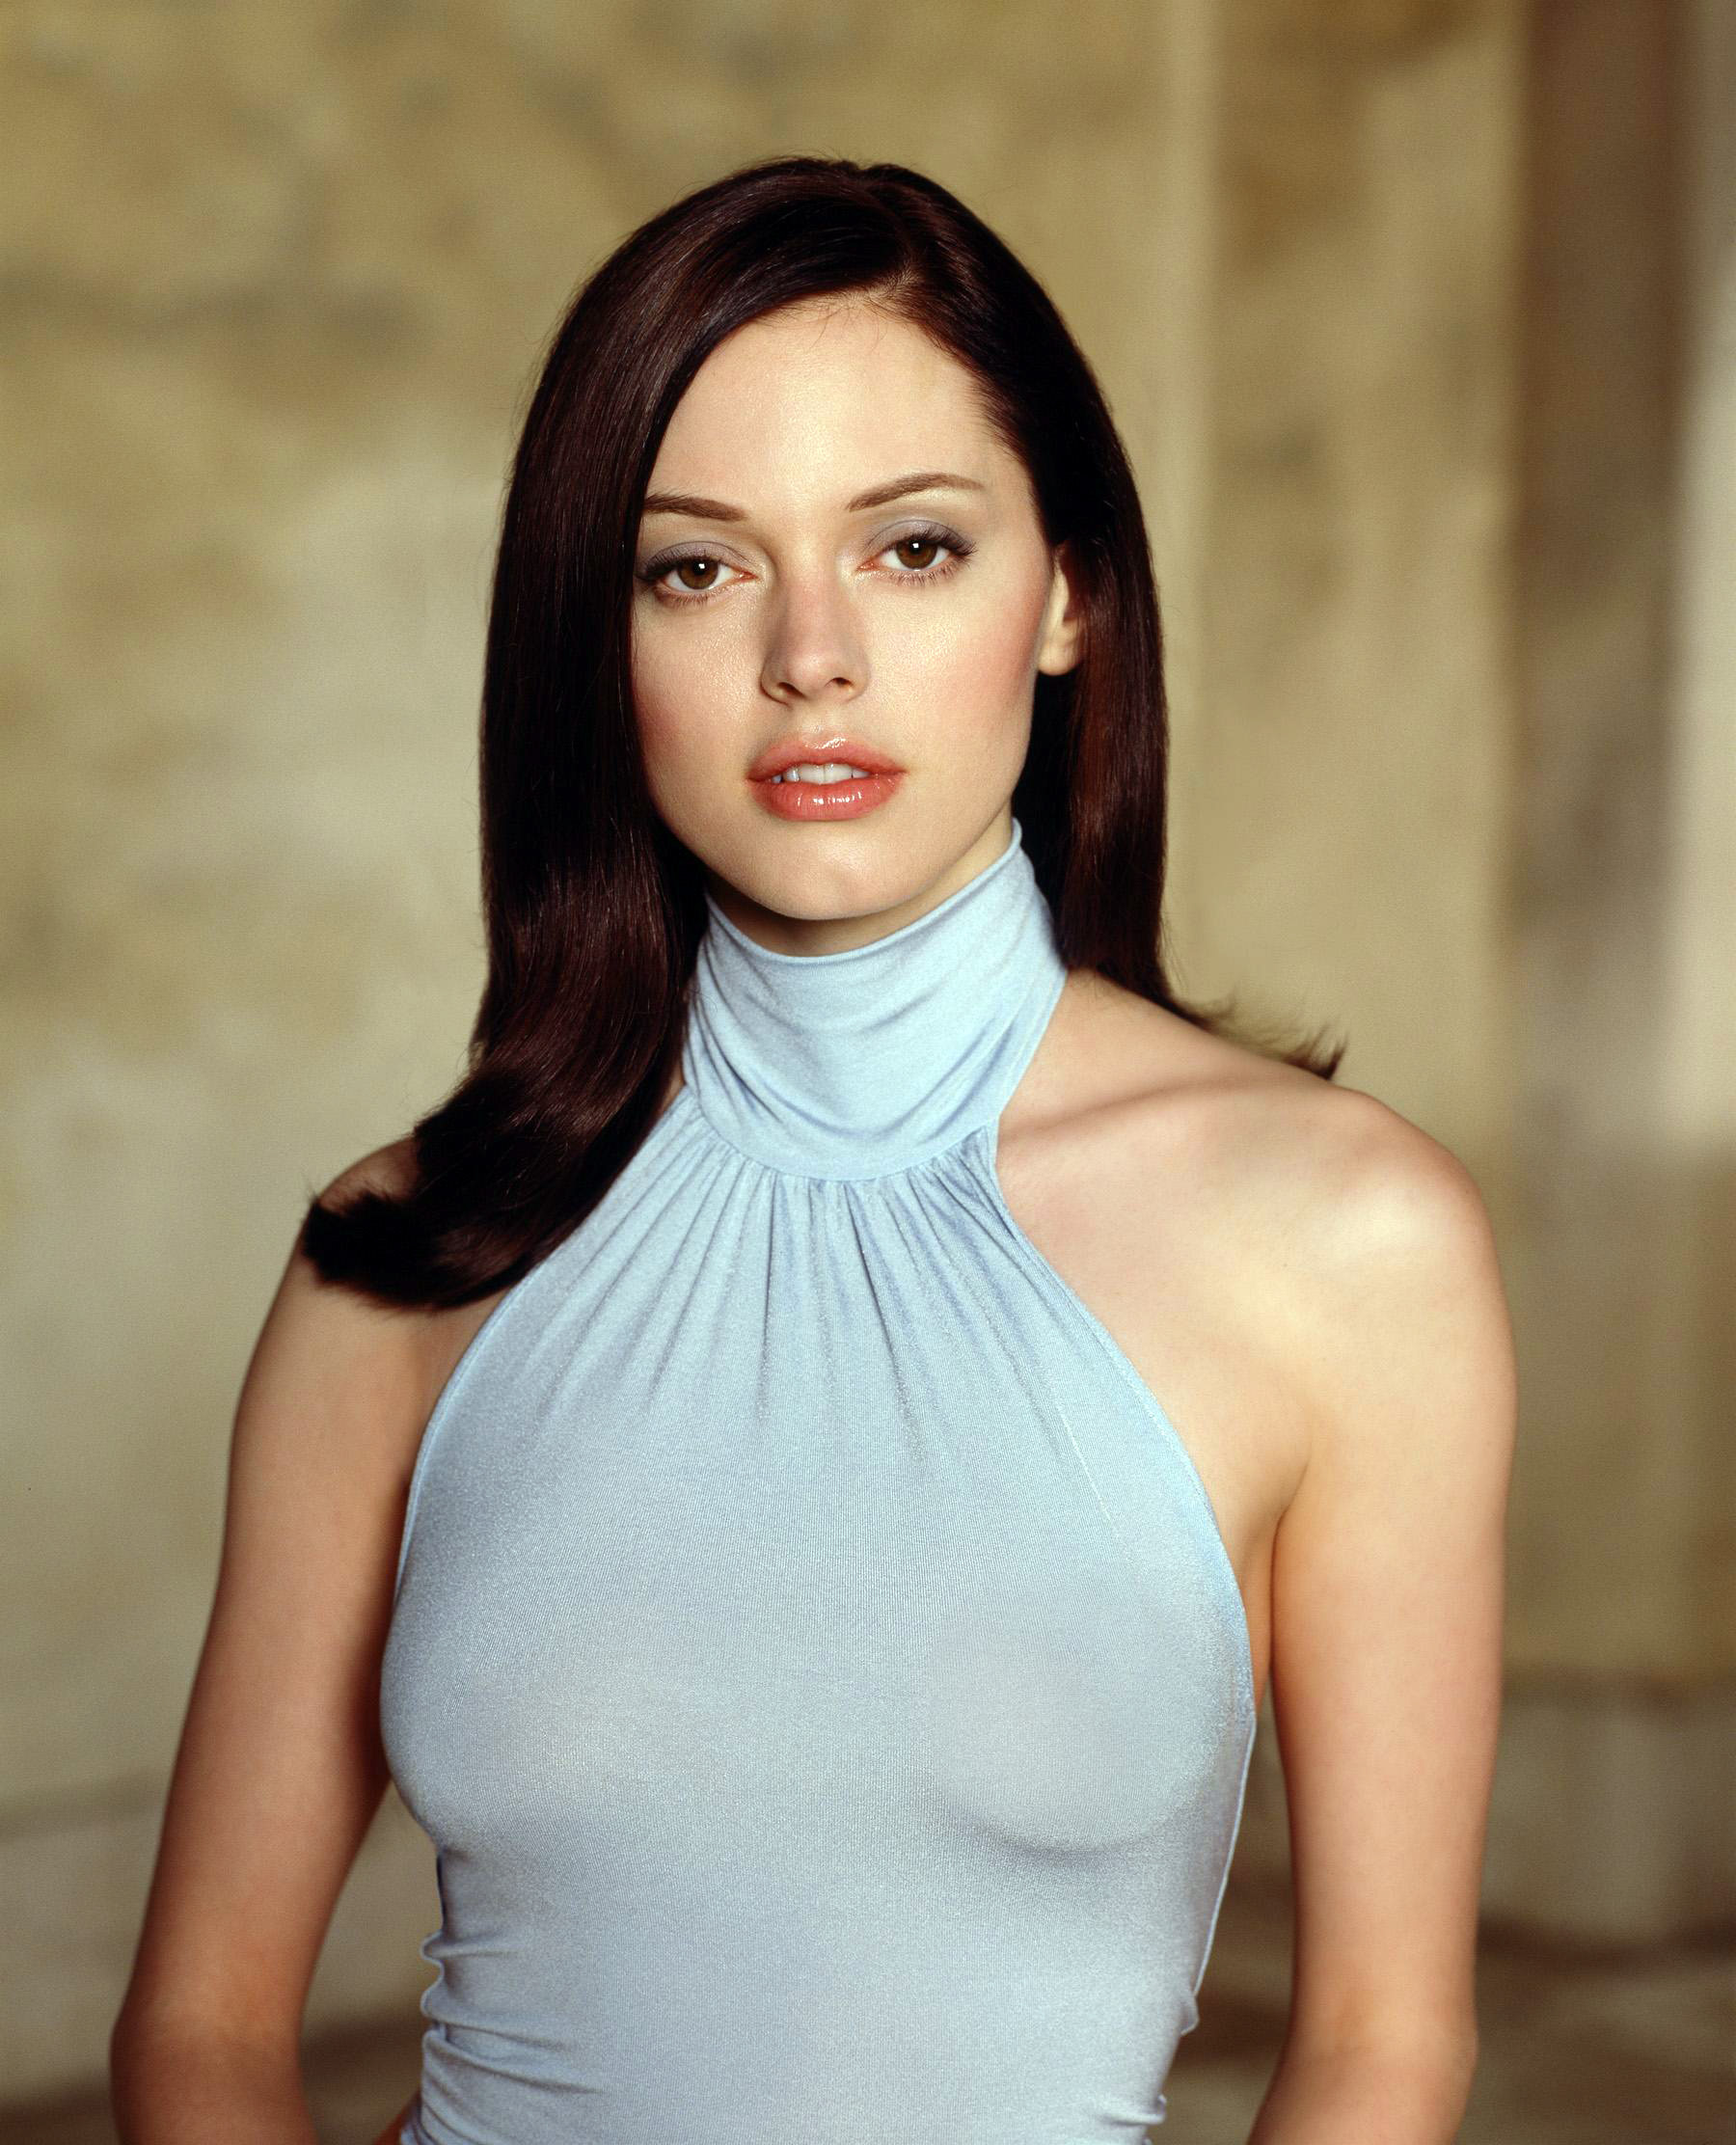 Cleavage Rose McGowan nudes (22 foto and video), Tits, Hot, Twitter, cleavage 2017